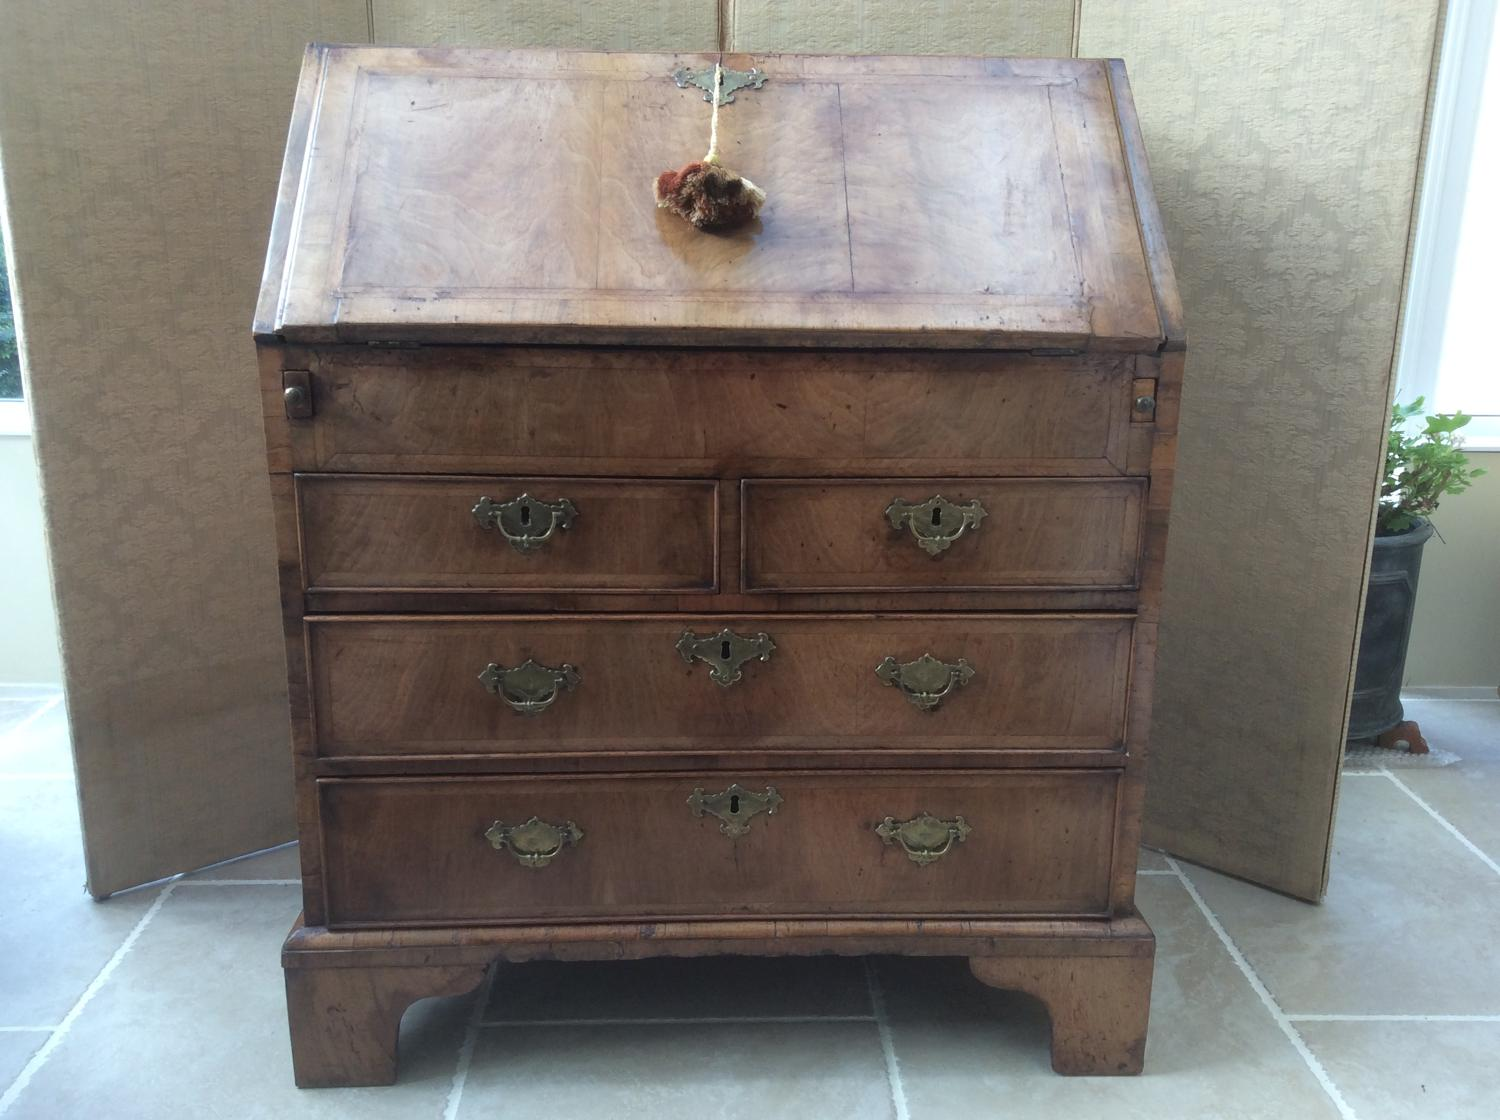 18th century walnut bureau